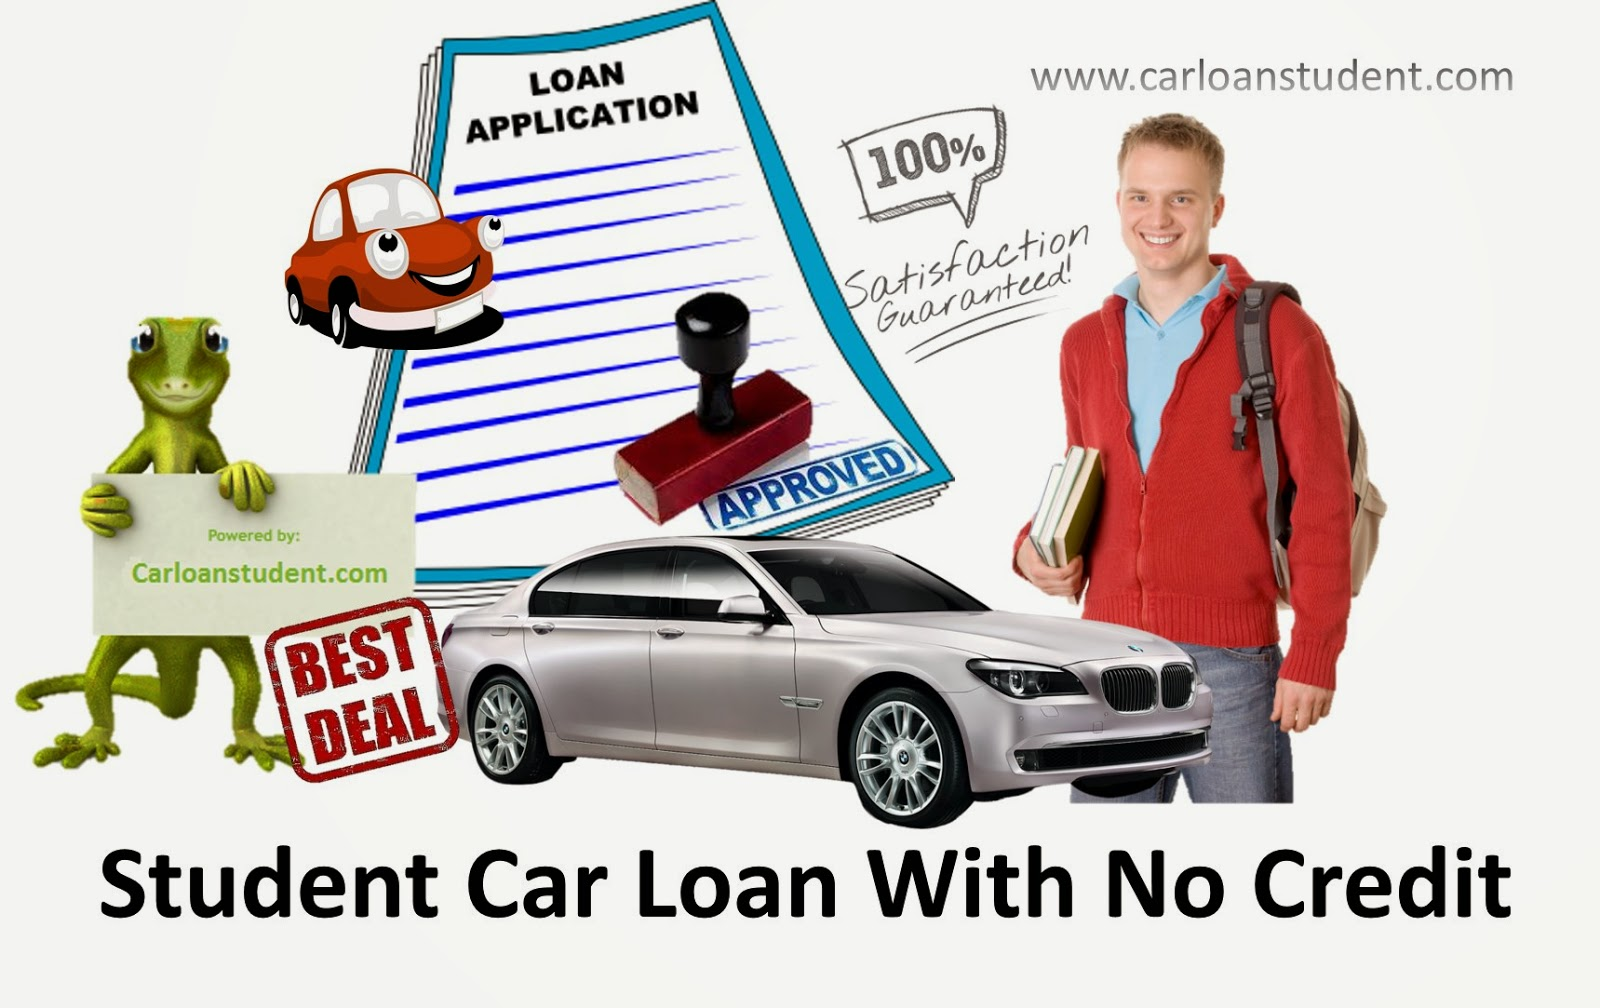 small student car loans to purchase car knowing all requirements to get lowest rates student. Black Bedroom Furniture Sets. Home Design Ideas